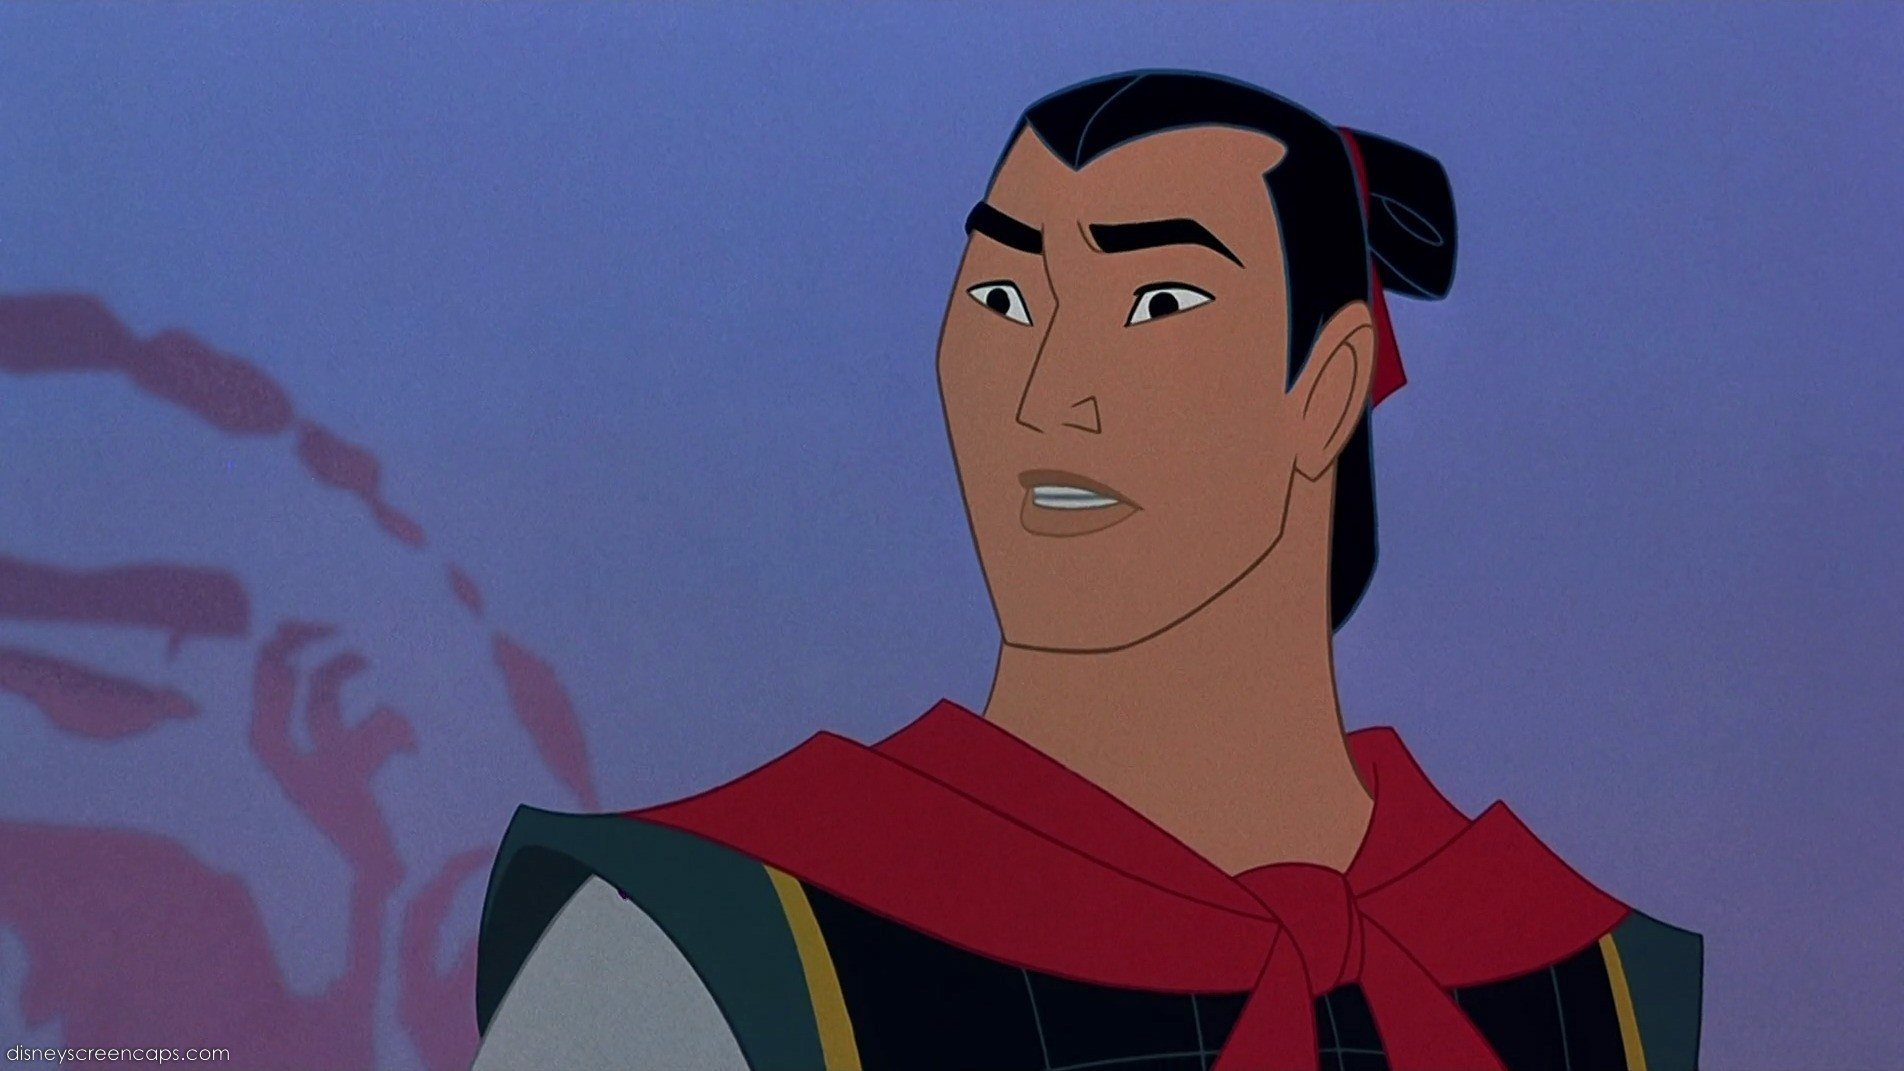 Uncategorized Captain Li Shang on a scale of 1 to 10 how attractive is captain li shang disney princess shang